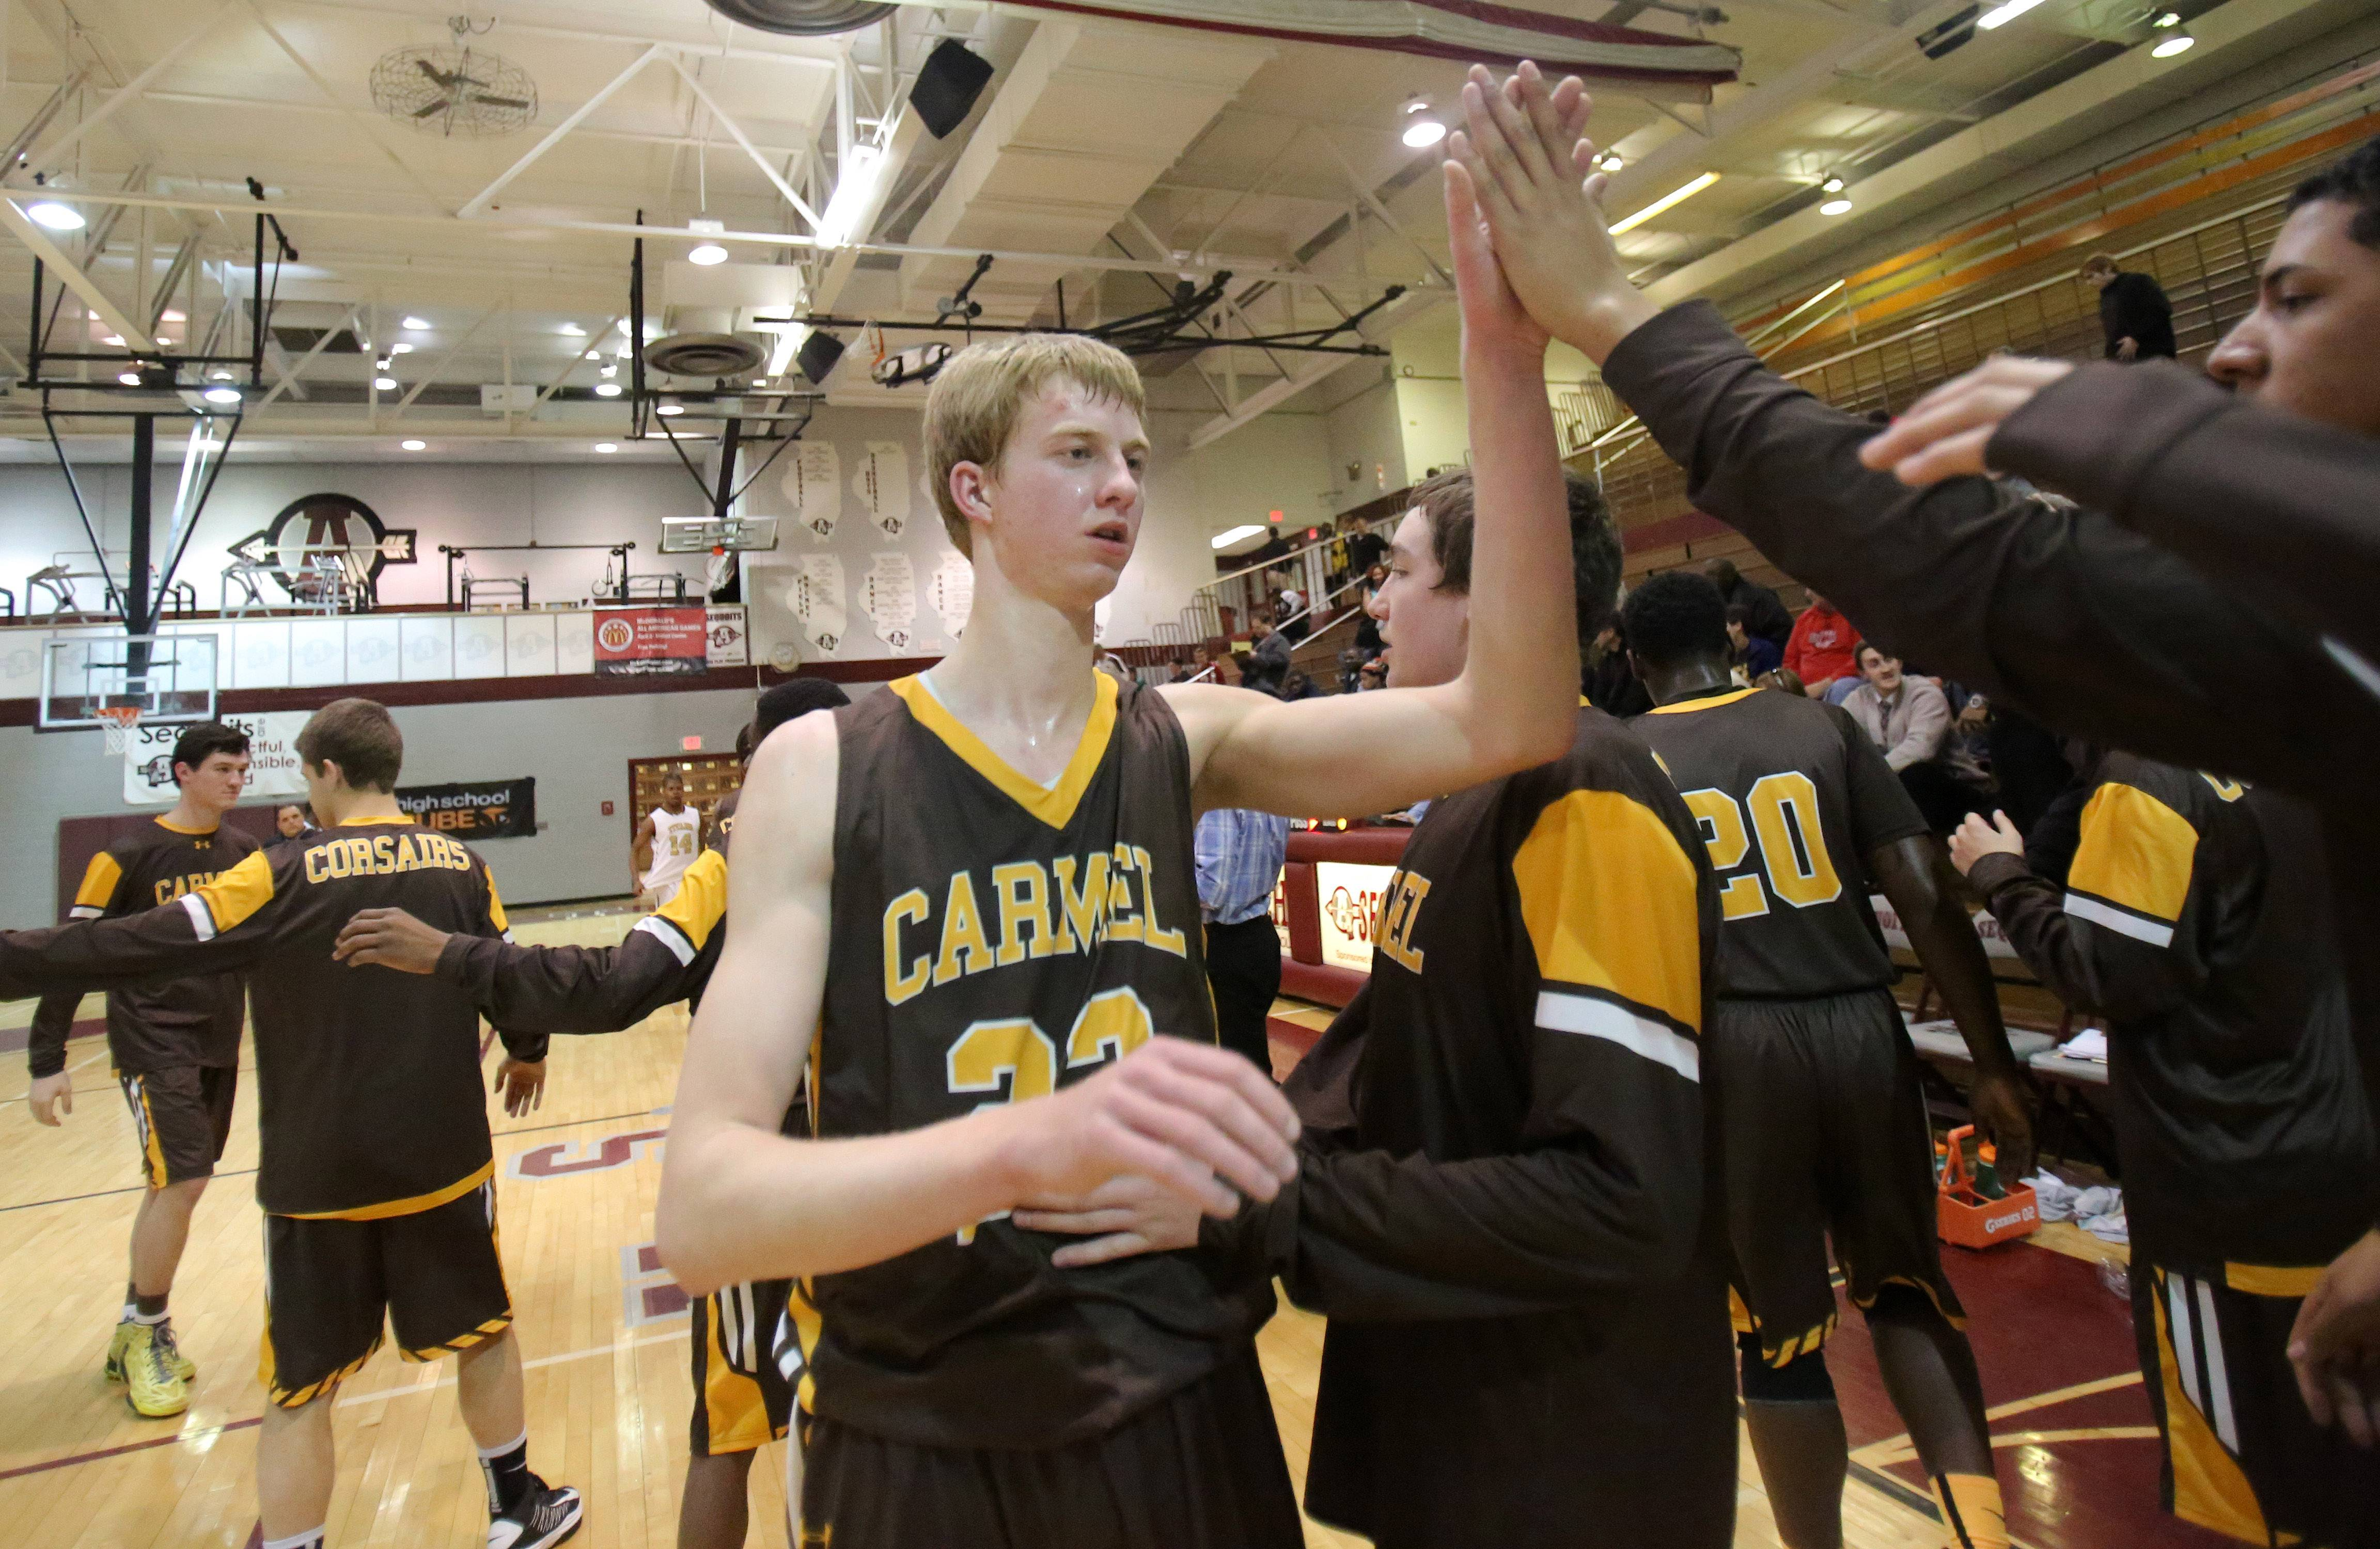 Achievements keep coming for sectional finalist Carmel